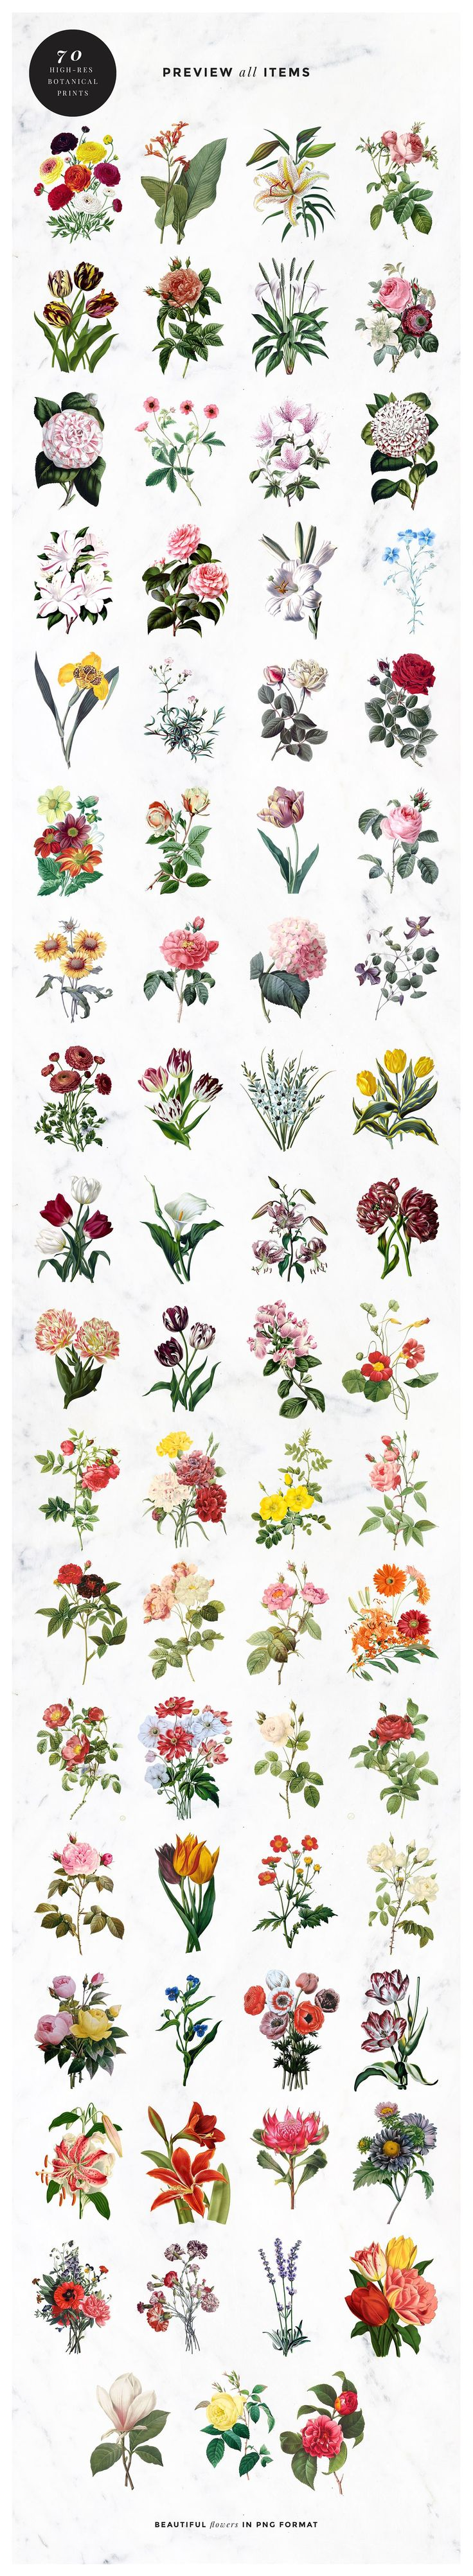 Vintage Botanical Images Illustrations, Flower Types